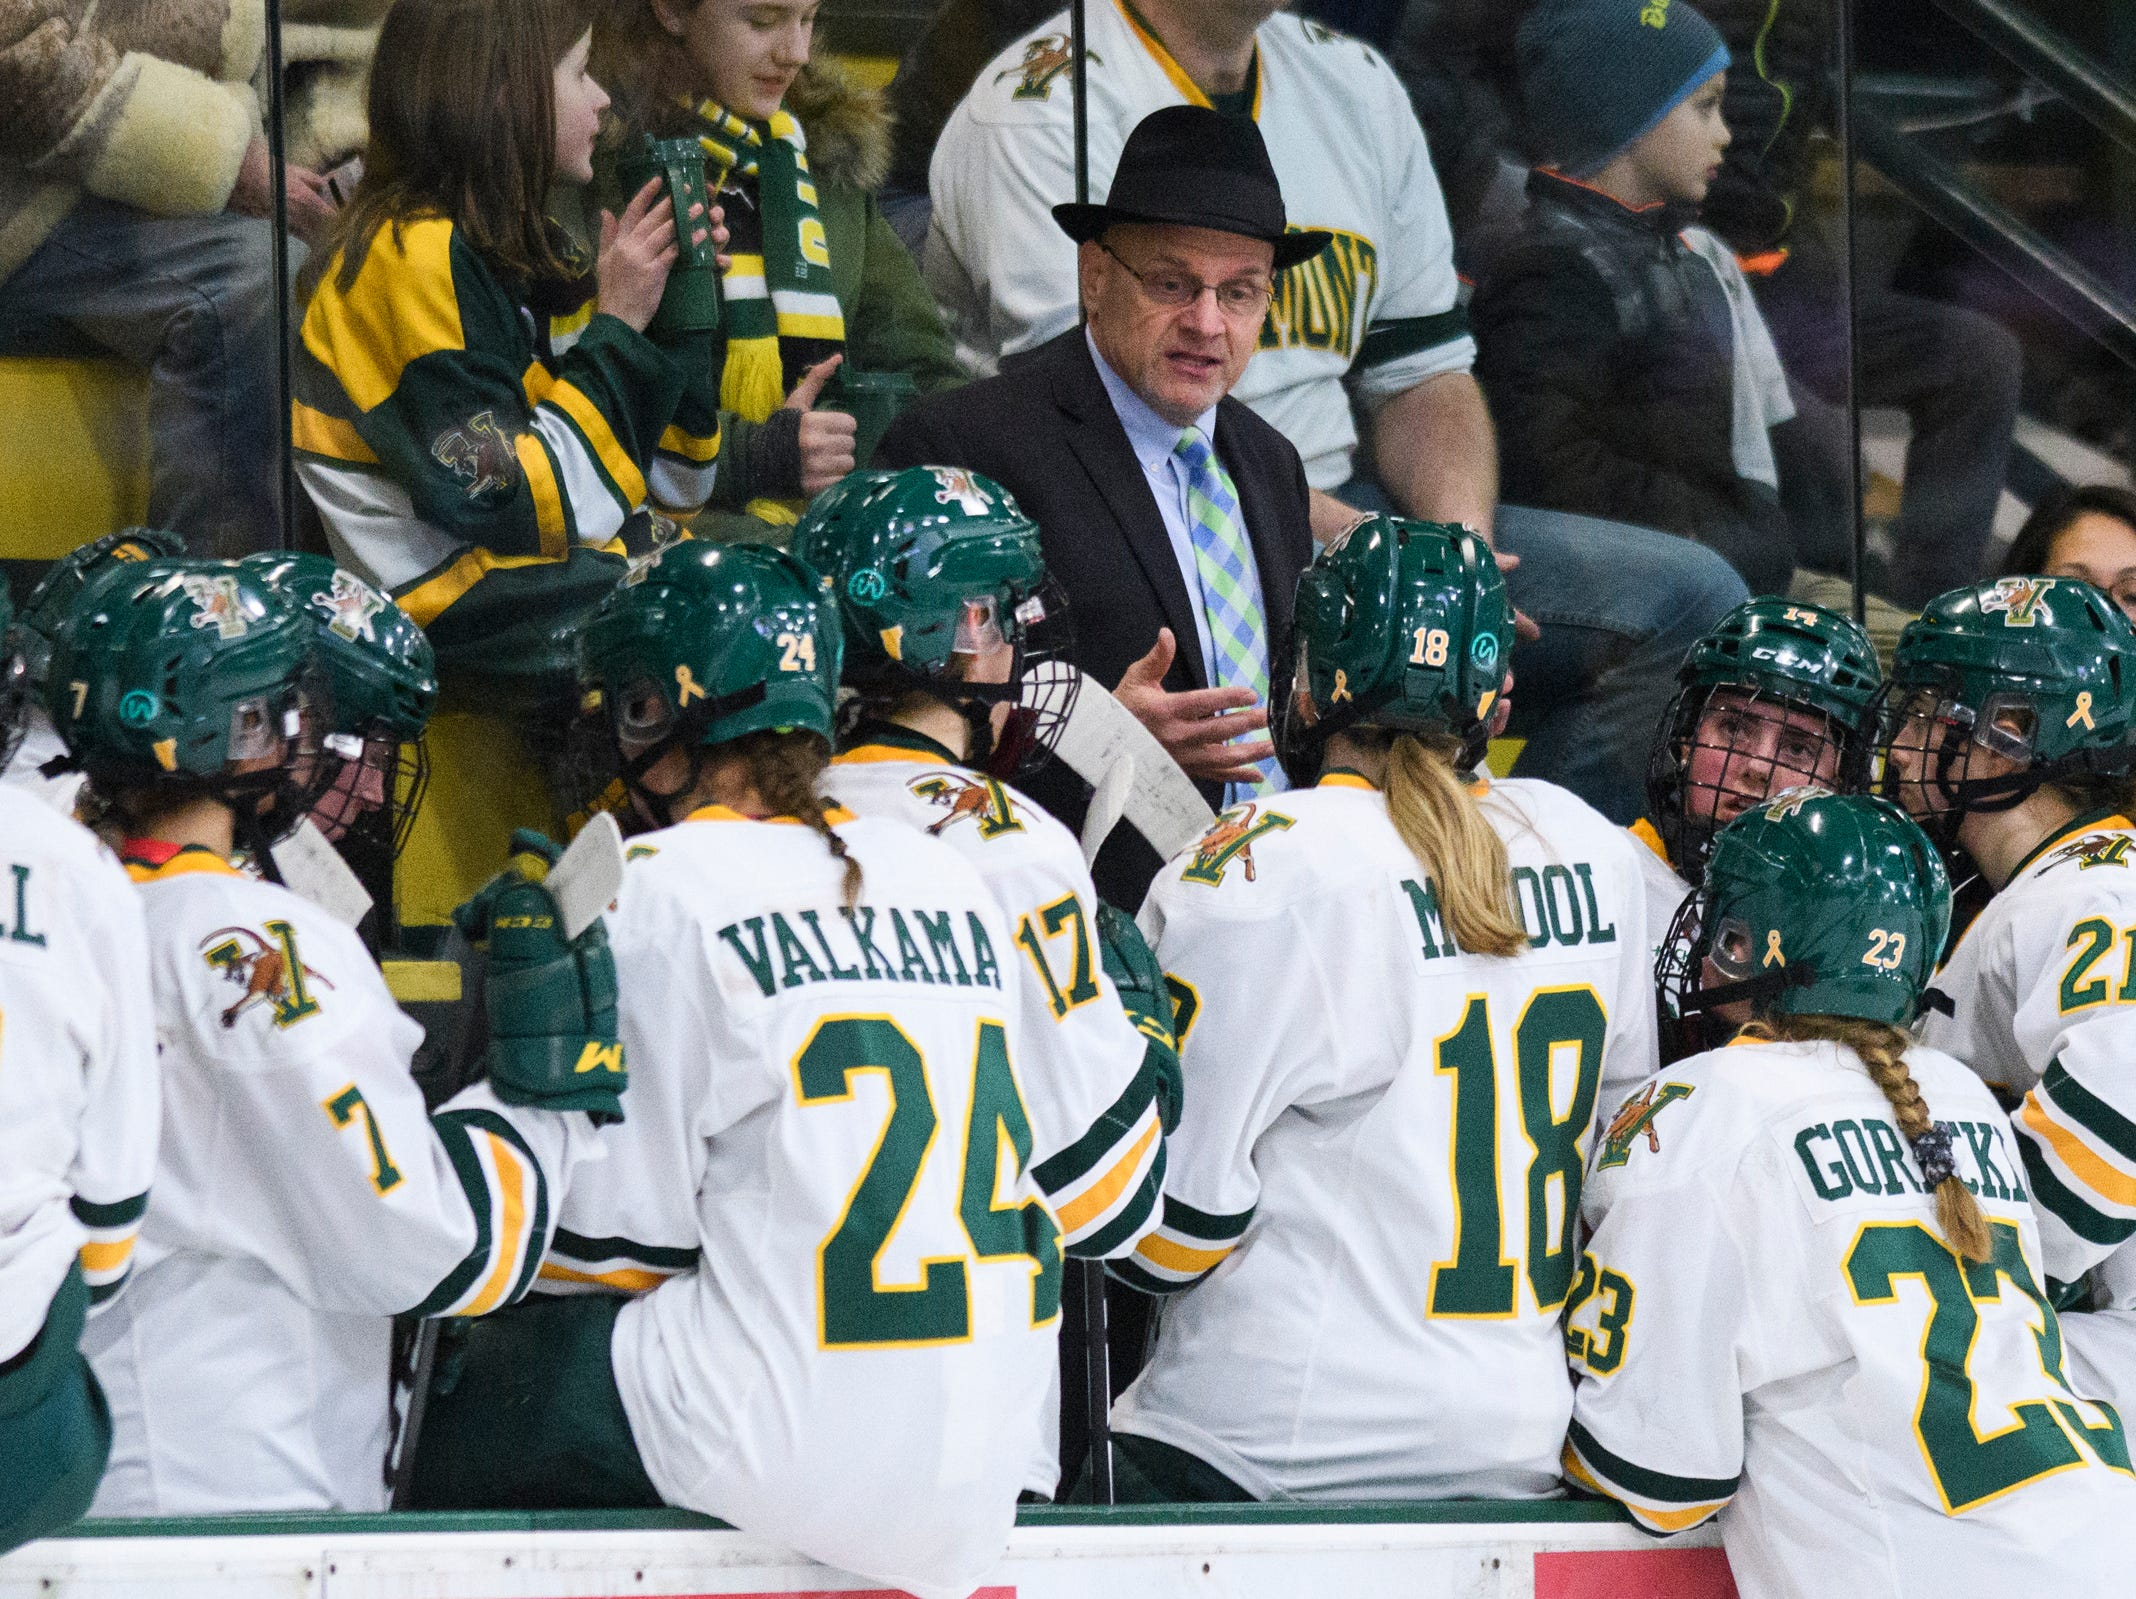 Vermont head coach Jim Plumber talks to the team during a time out in the first period of the women's hockey game between the Boston Terriers and the Vermont Catamounts at Gutterson Field House on Friday night February 1, 2019 in Burlington, Vermont.